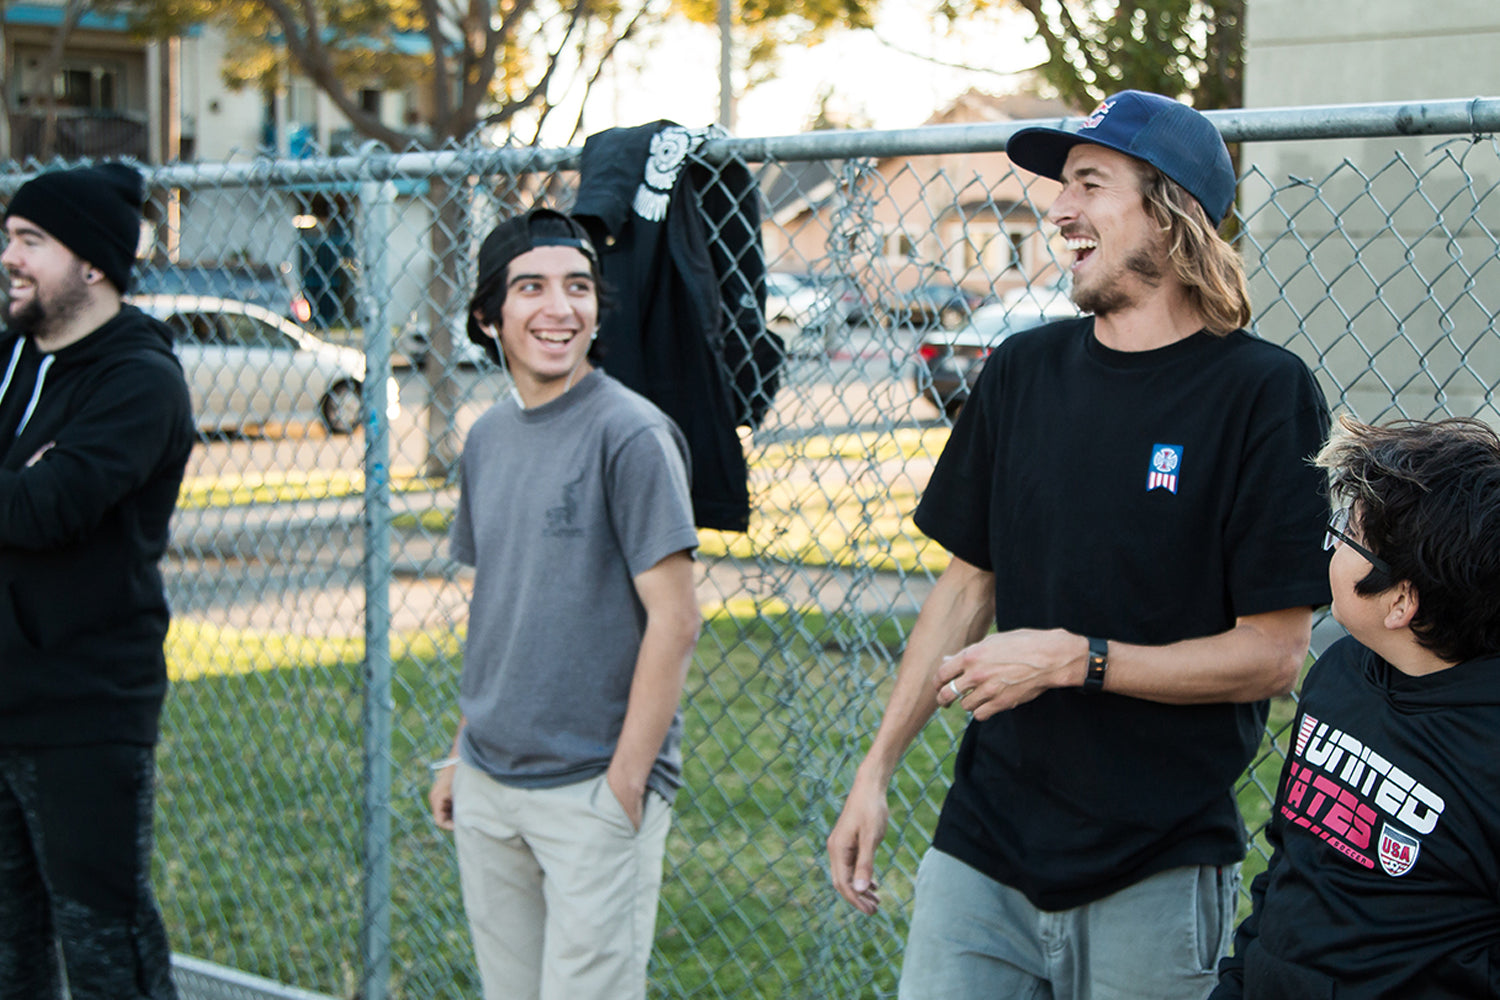 stoked-ride-shop-welcoming-beginners-to-skateboarding-featuring-NextUp-Foundation-4